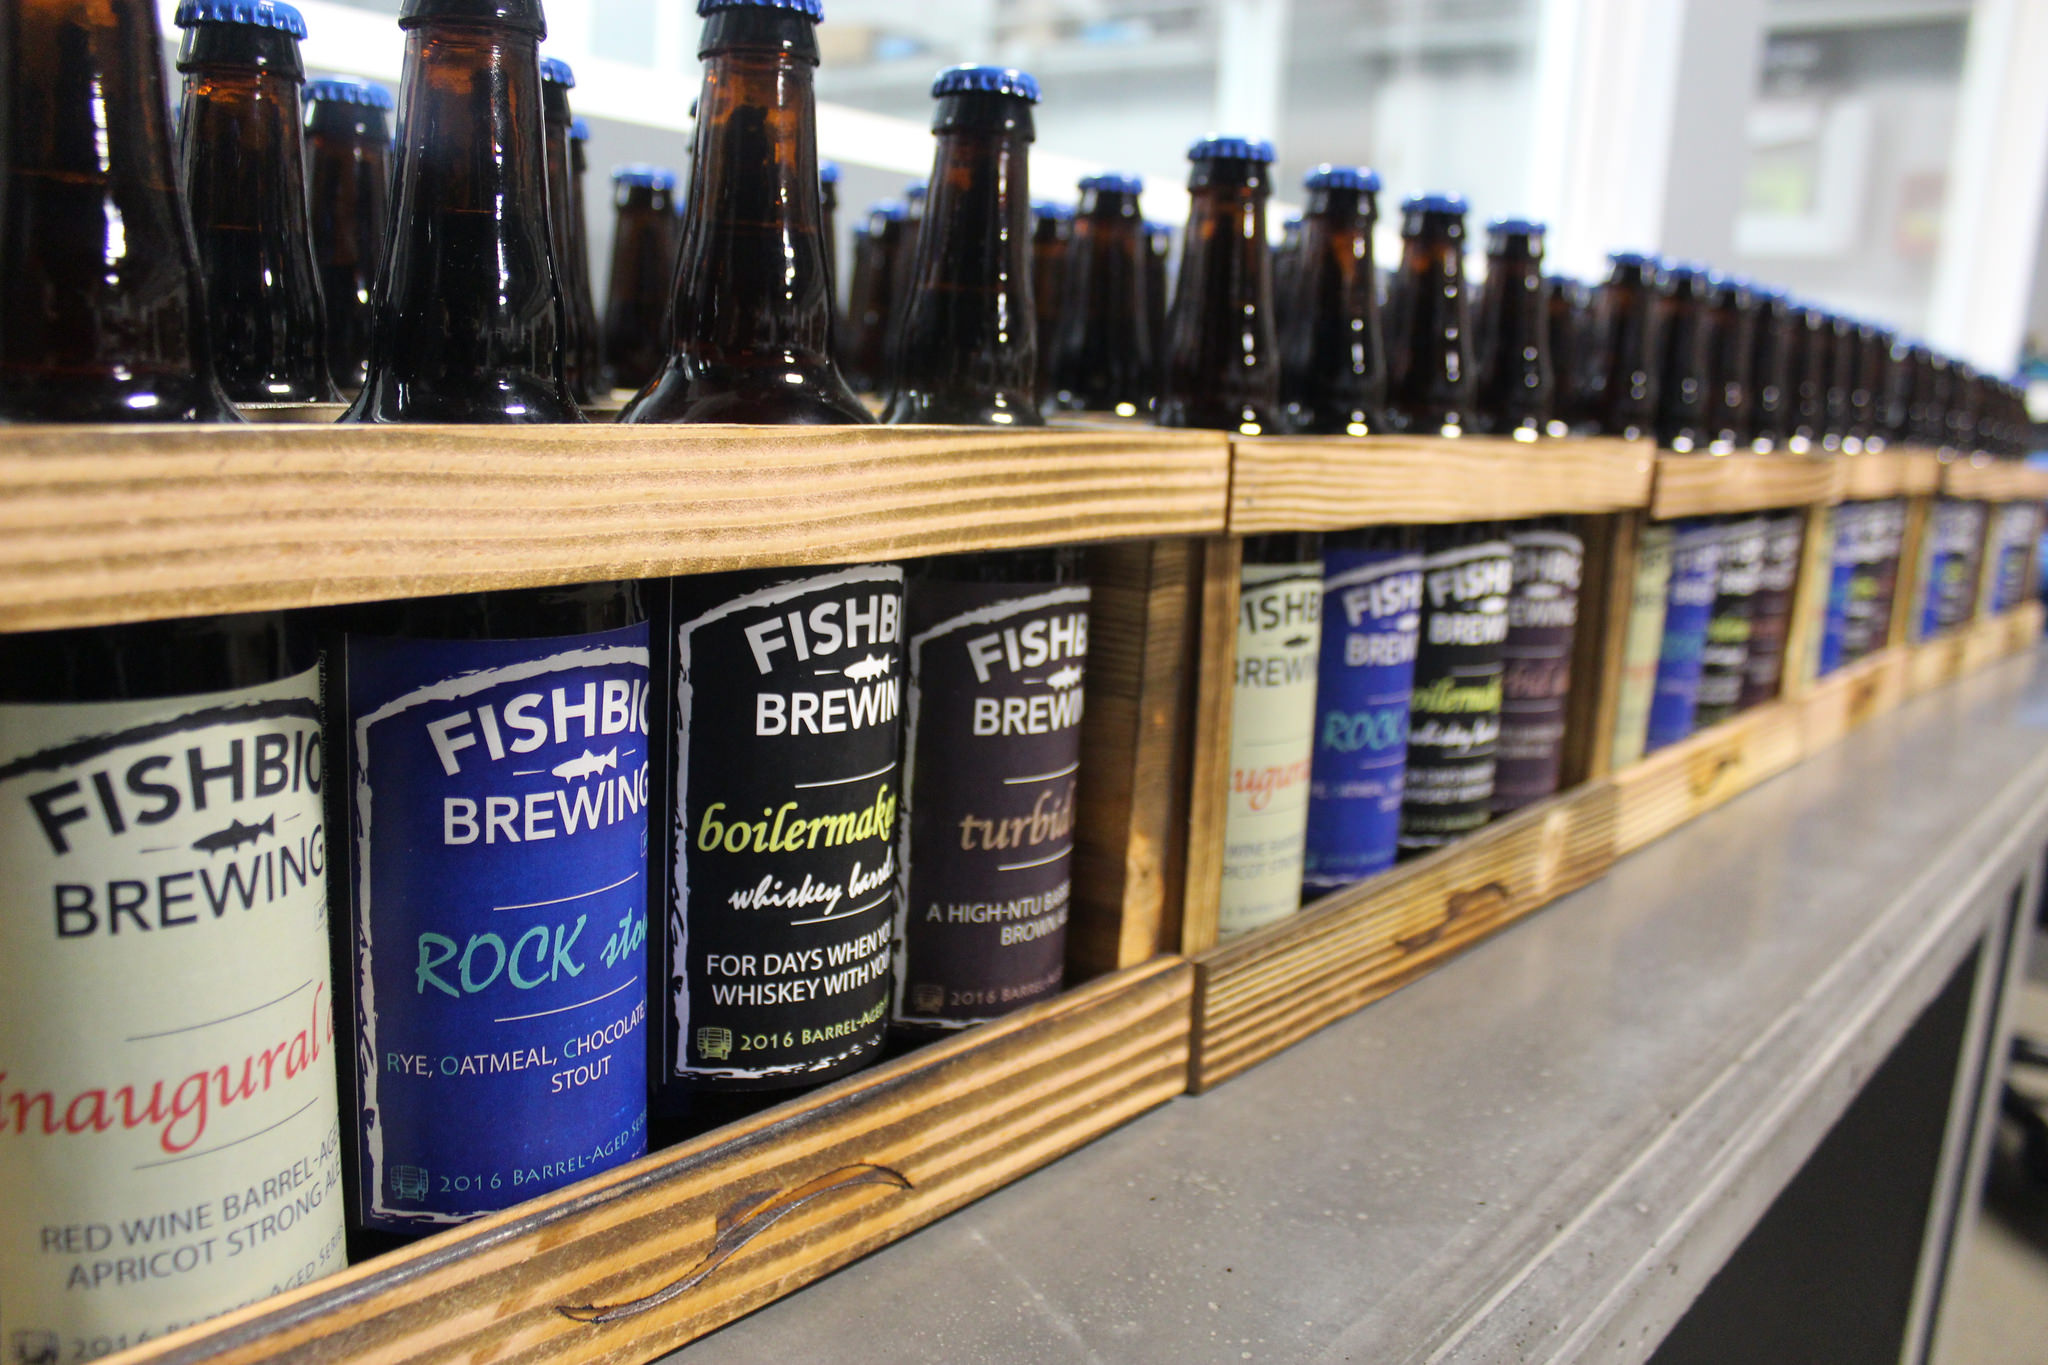 fishbio-bottle-aged-beer-series